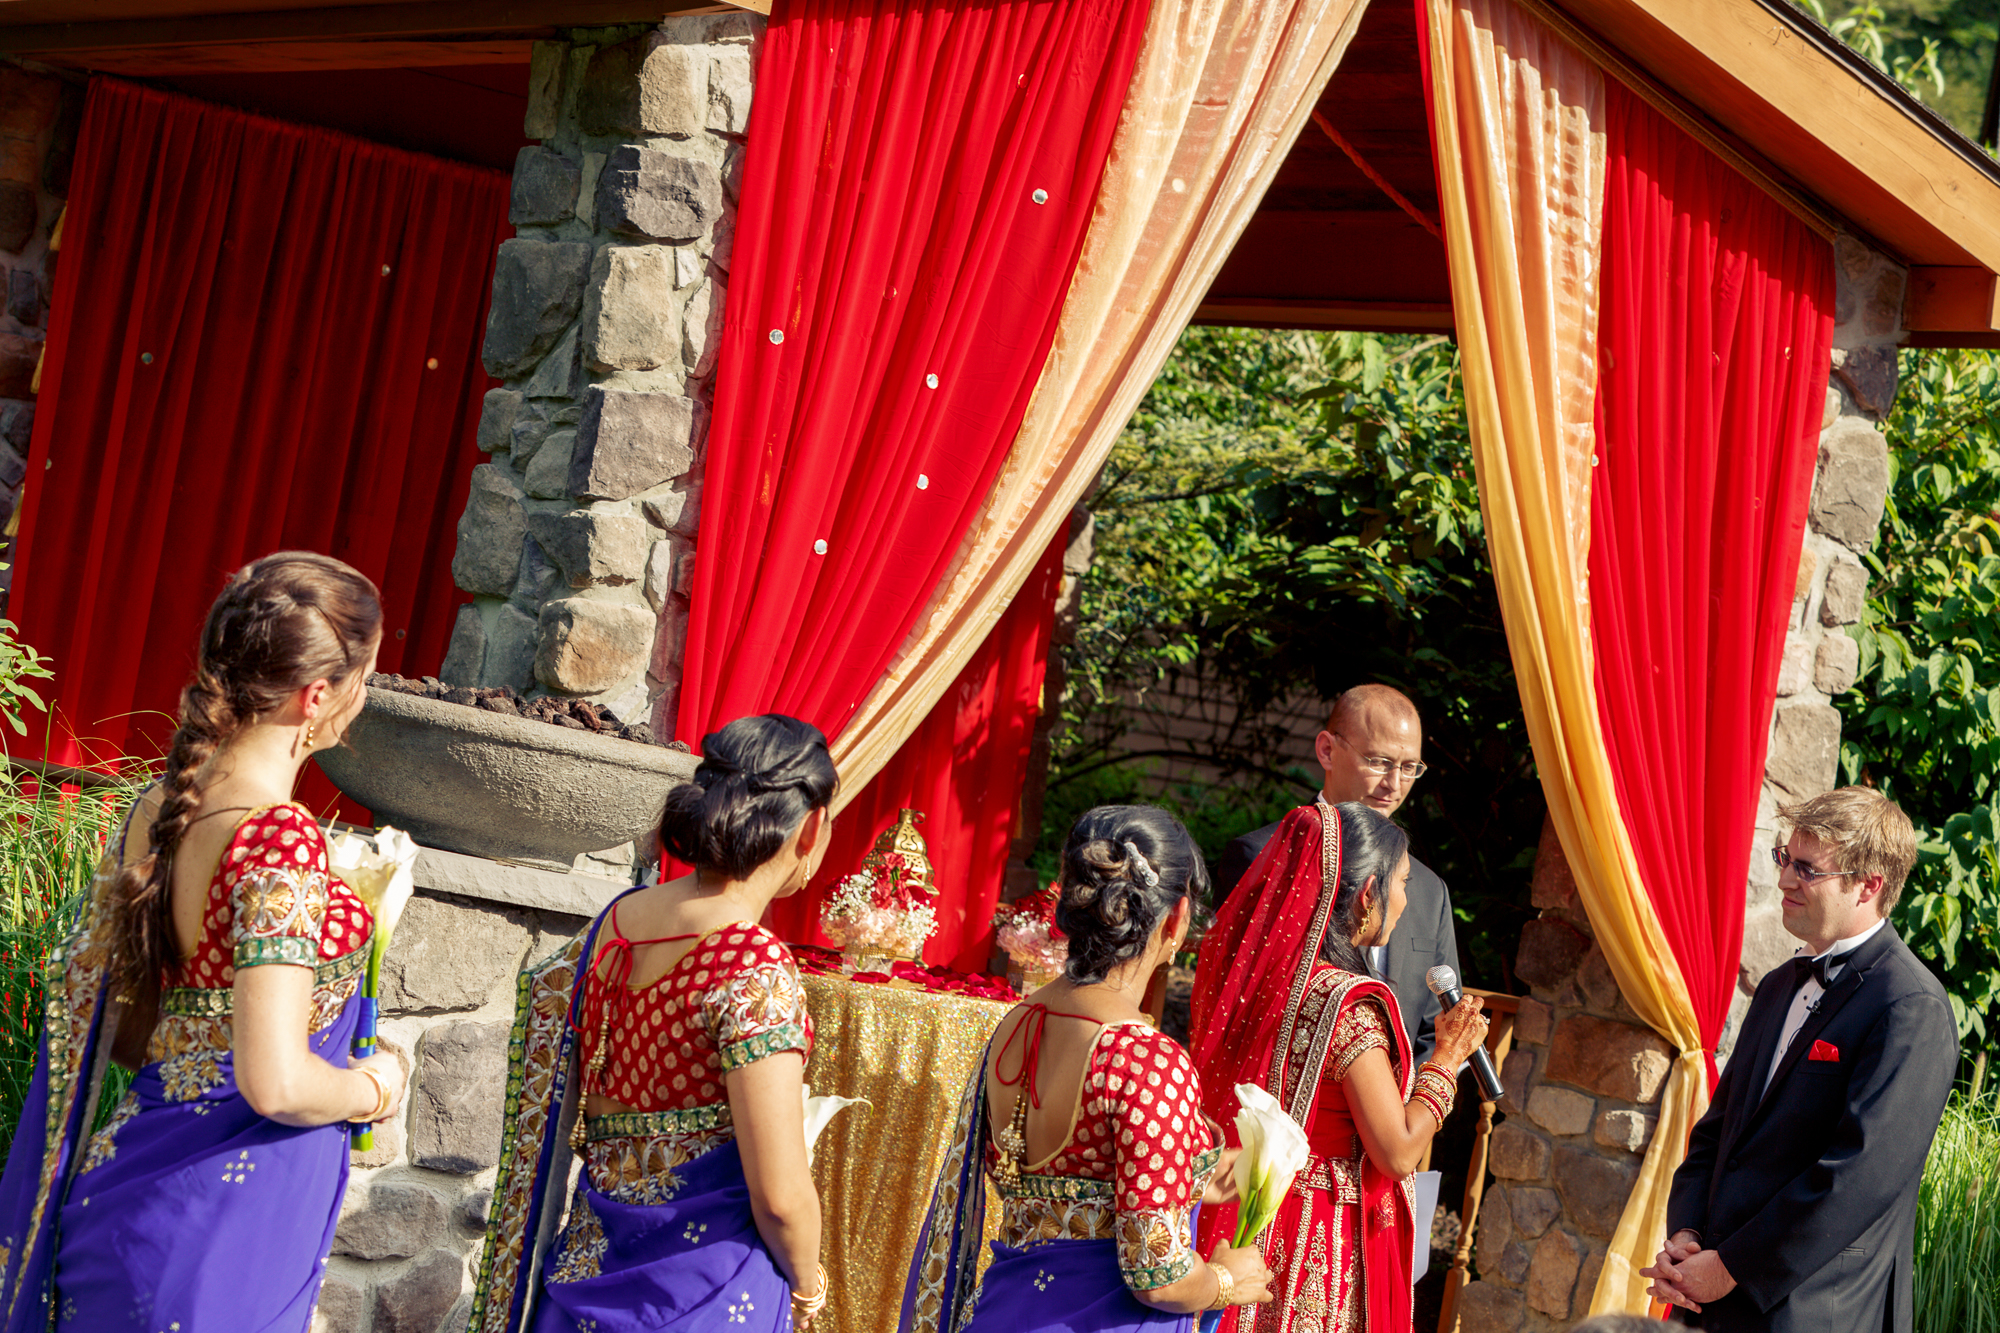 scranton-wedding-photography-zak-zavada-2015.08-rituDoug-0396.jpg